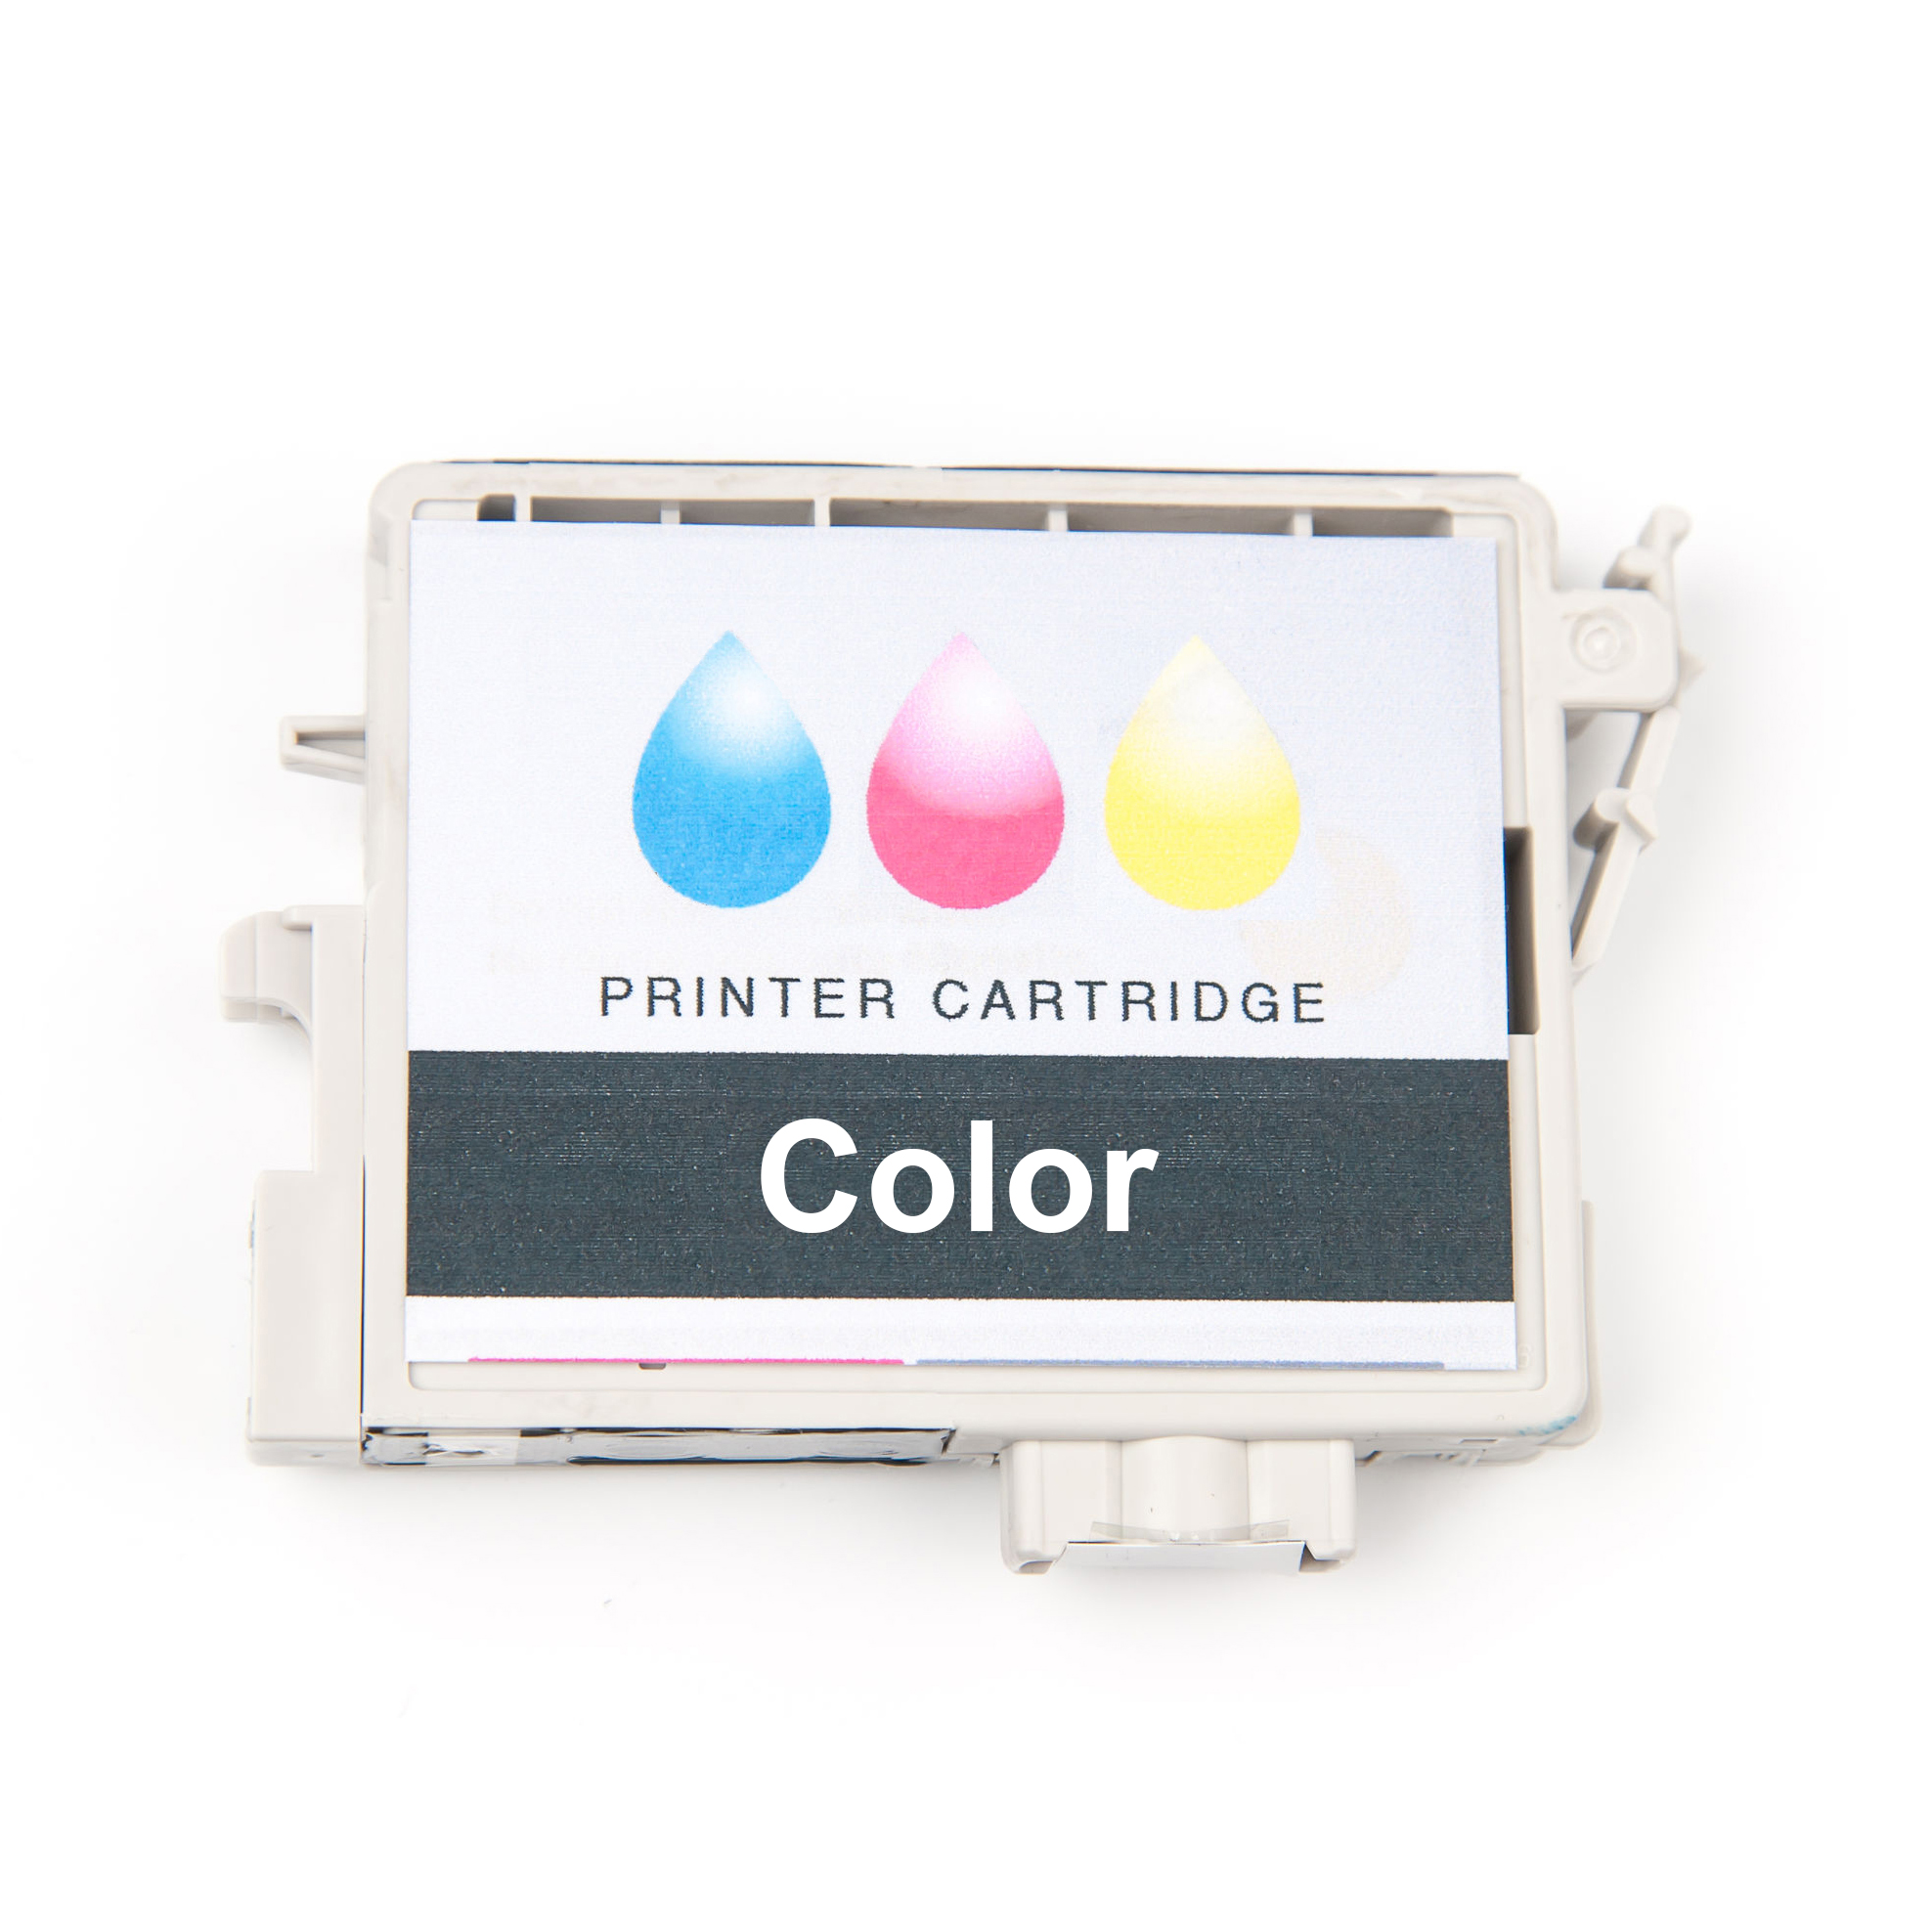 Original Canon 5222B013 / PG540XLCL541XL Printhead multi pack